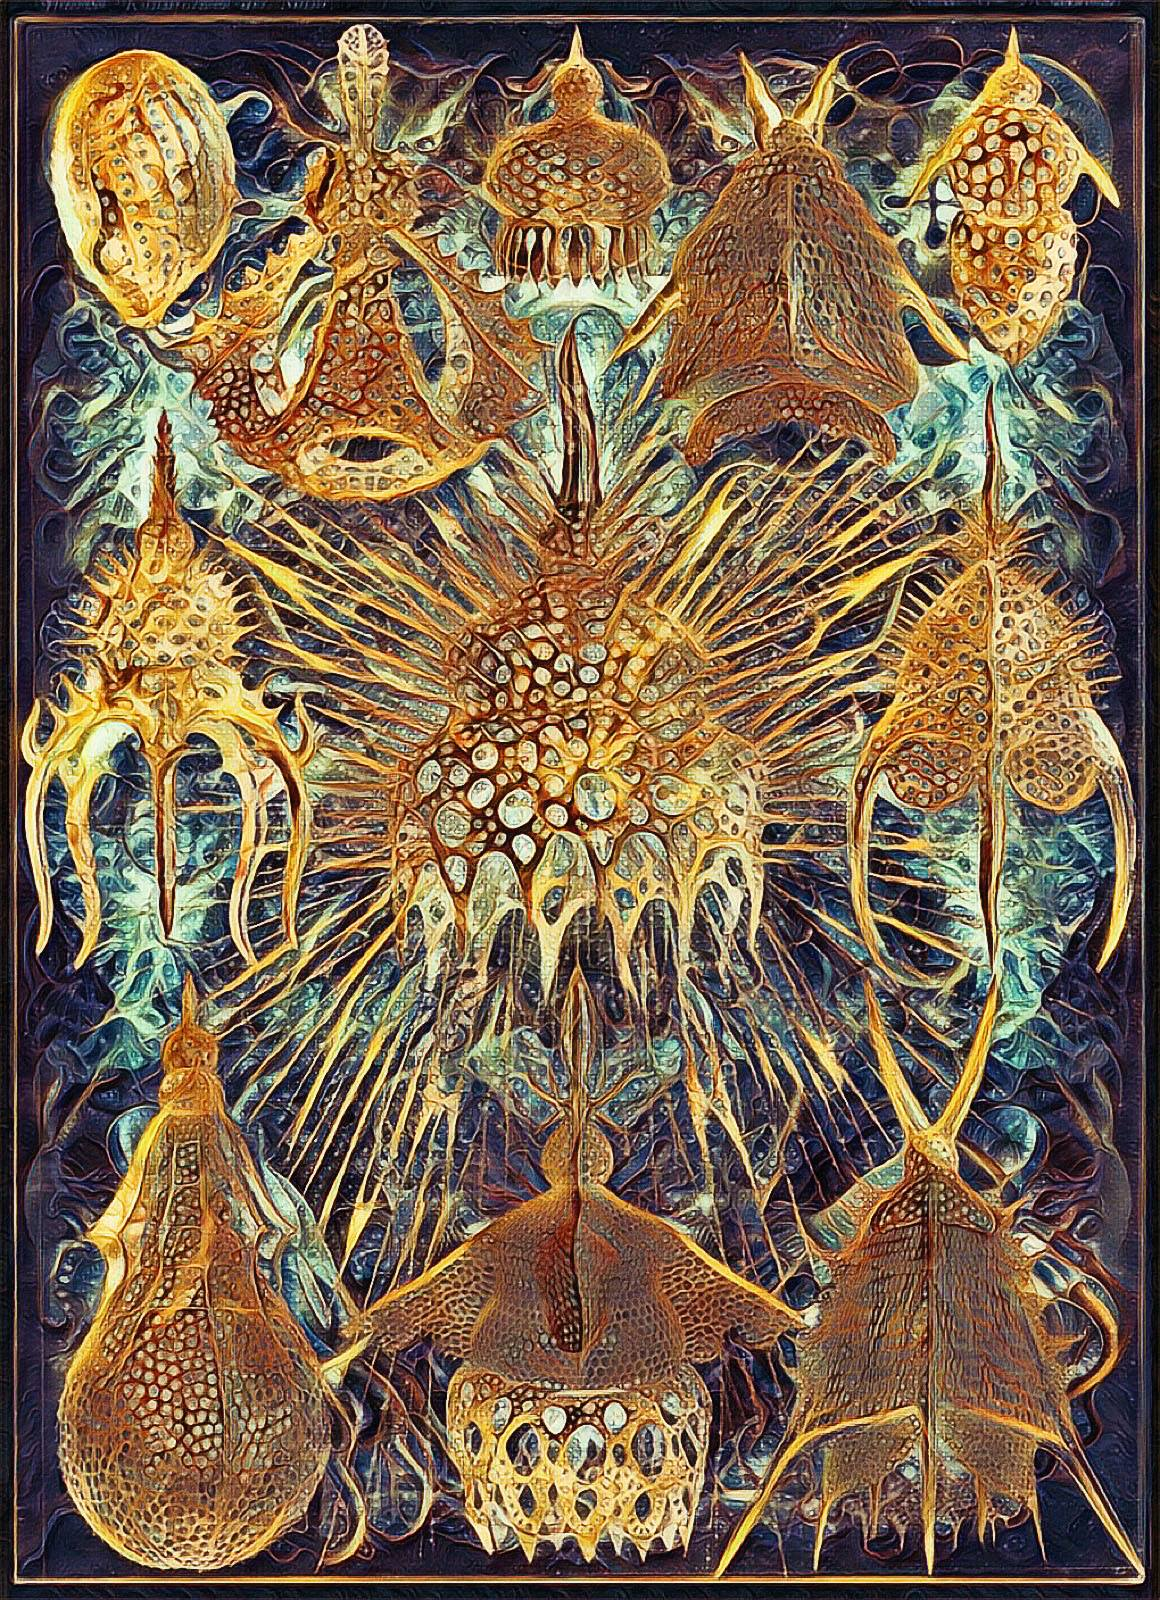 Haeckel Variation 11: The Crown Jewels of Carcosa by james119